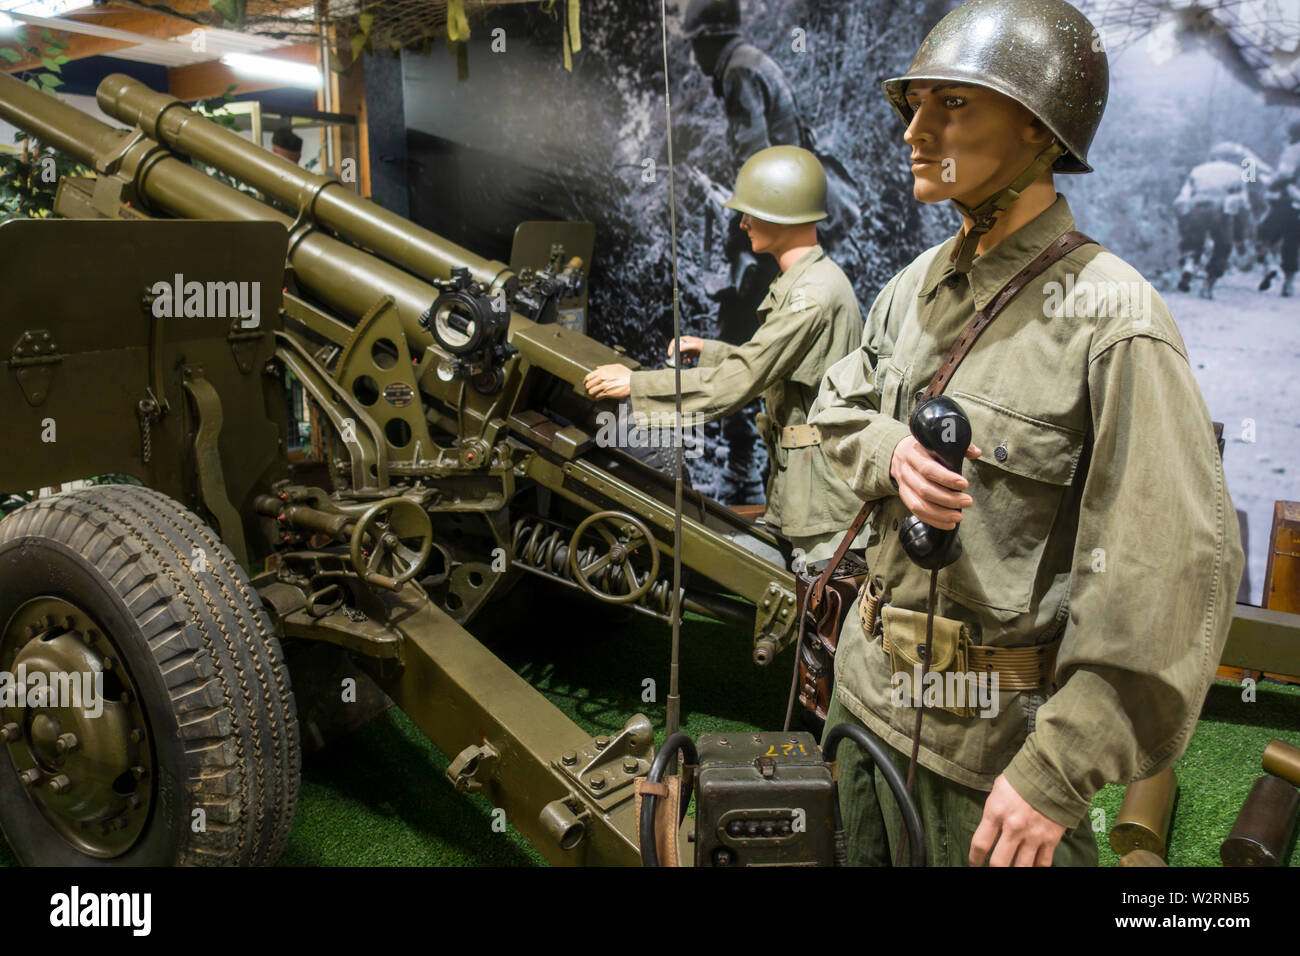 Diorama showing WW2 US soldiers operating field gun in the Musée Mémorial d'Omaha Beach museum, Saint-Laurent-sur-Mer, Normandy, France - Stock Image